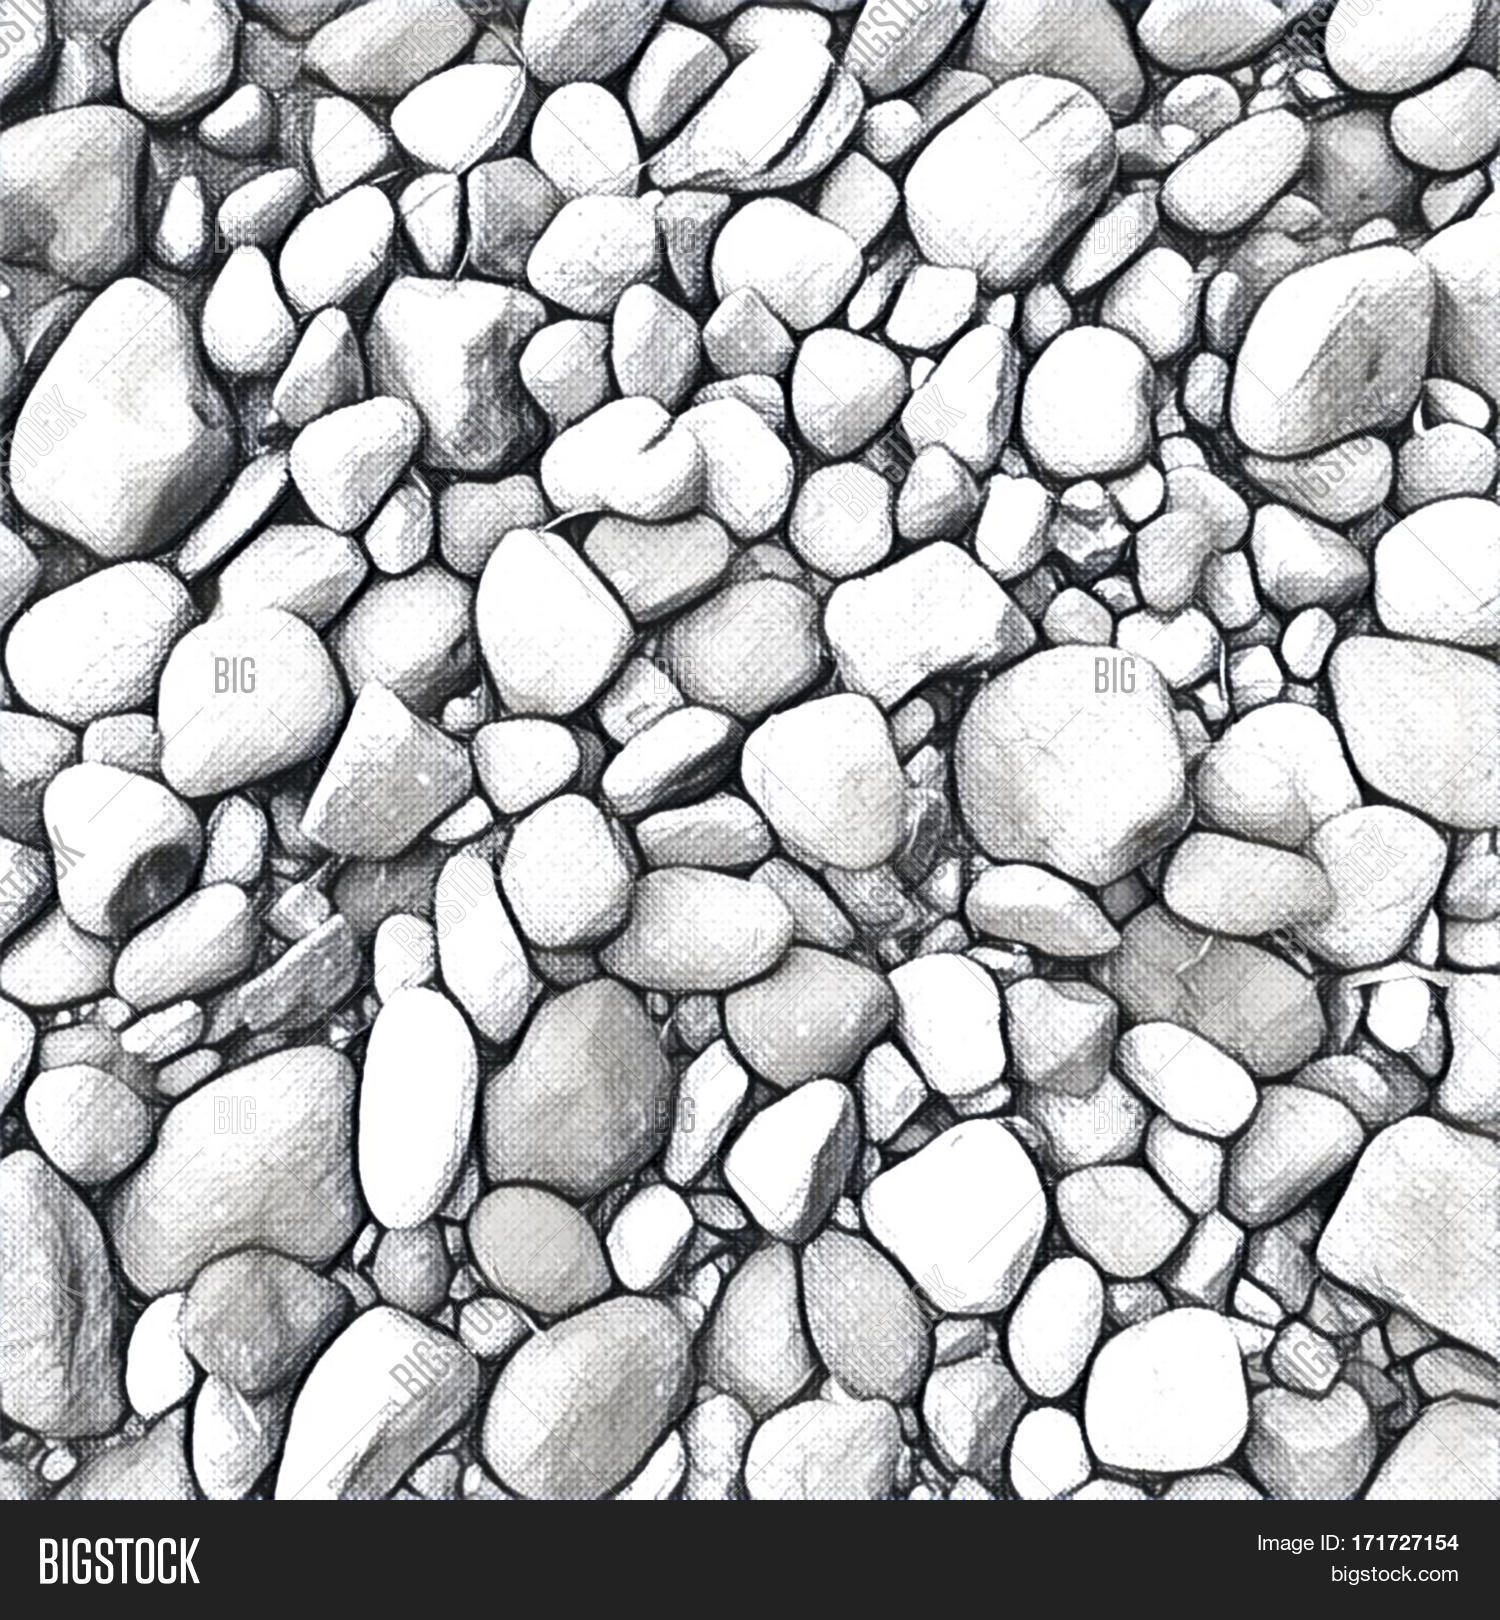 1500x1620 Stone Background Digital Image Amp Photo Bigstock